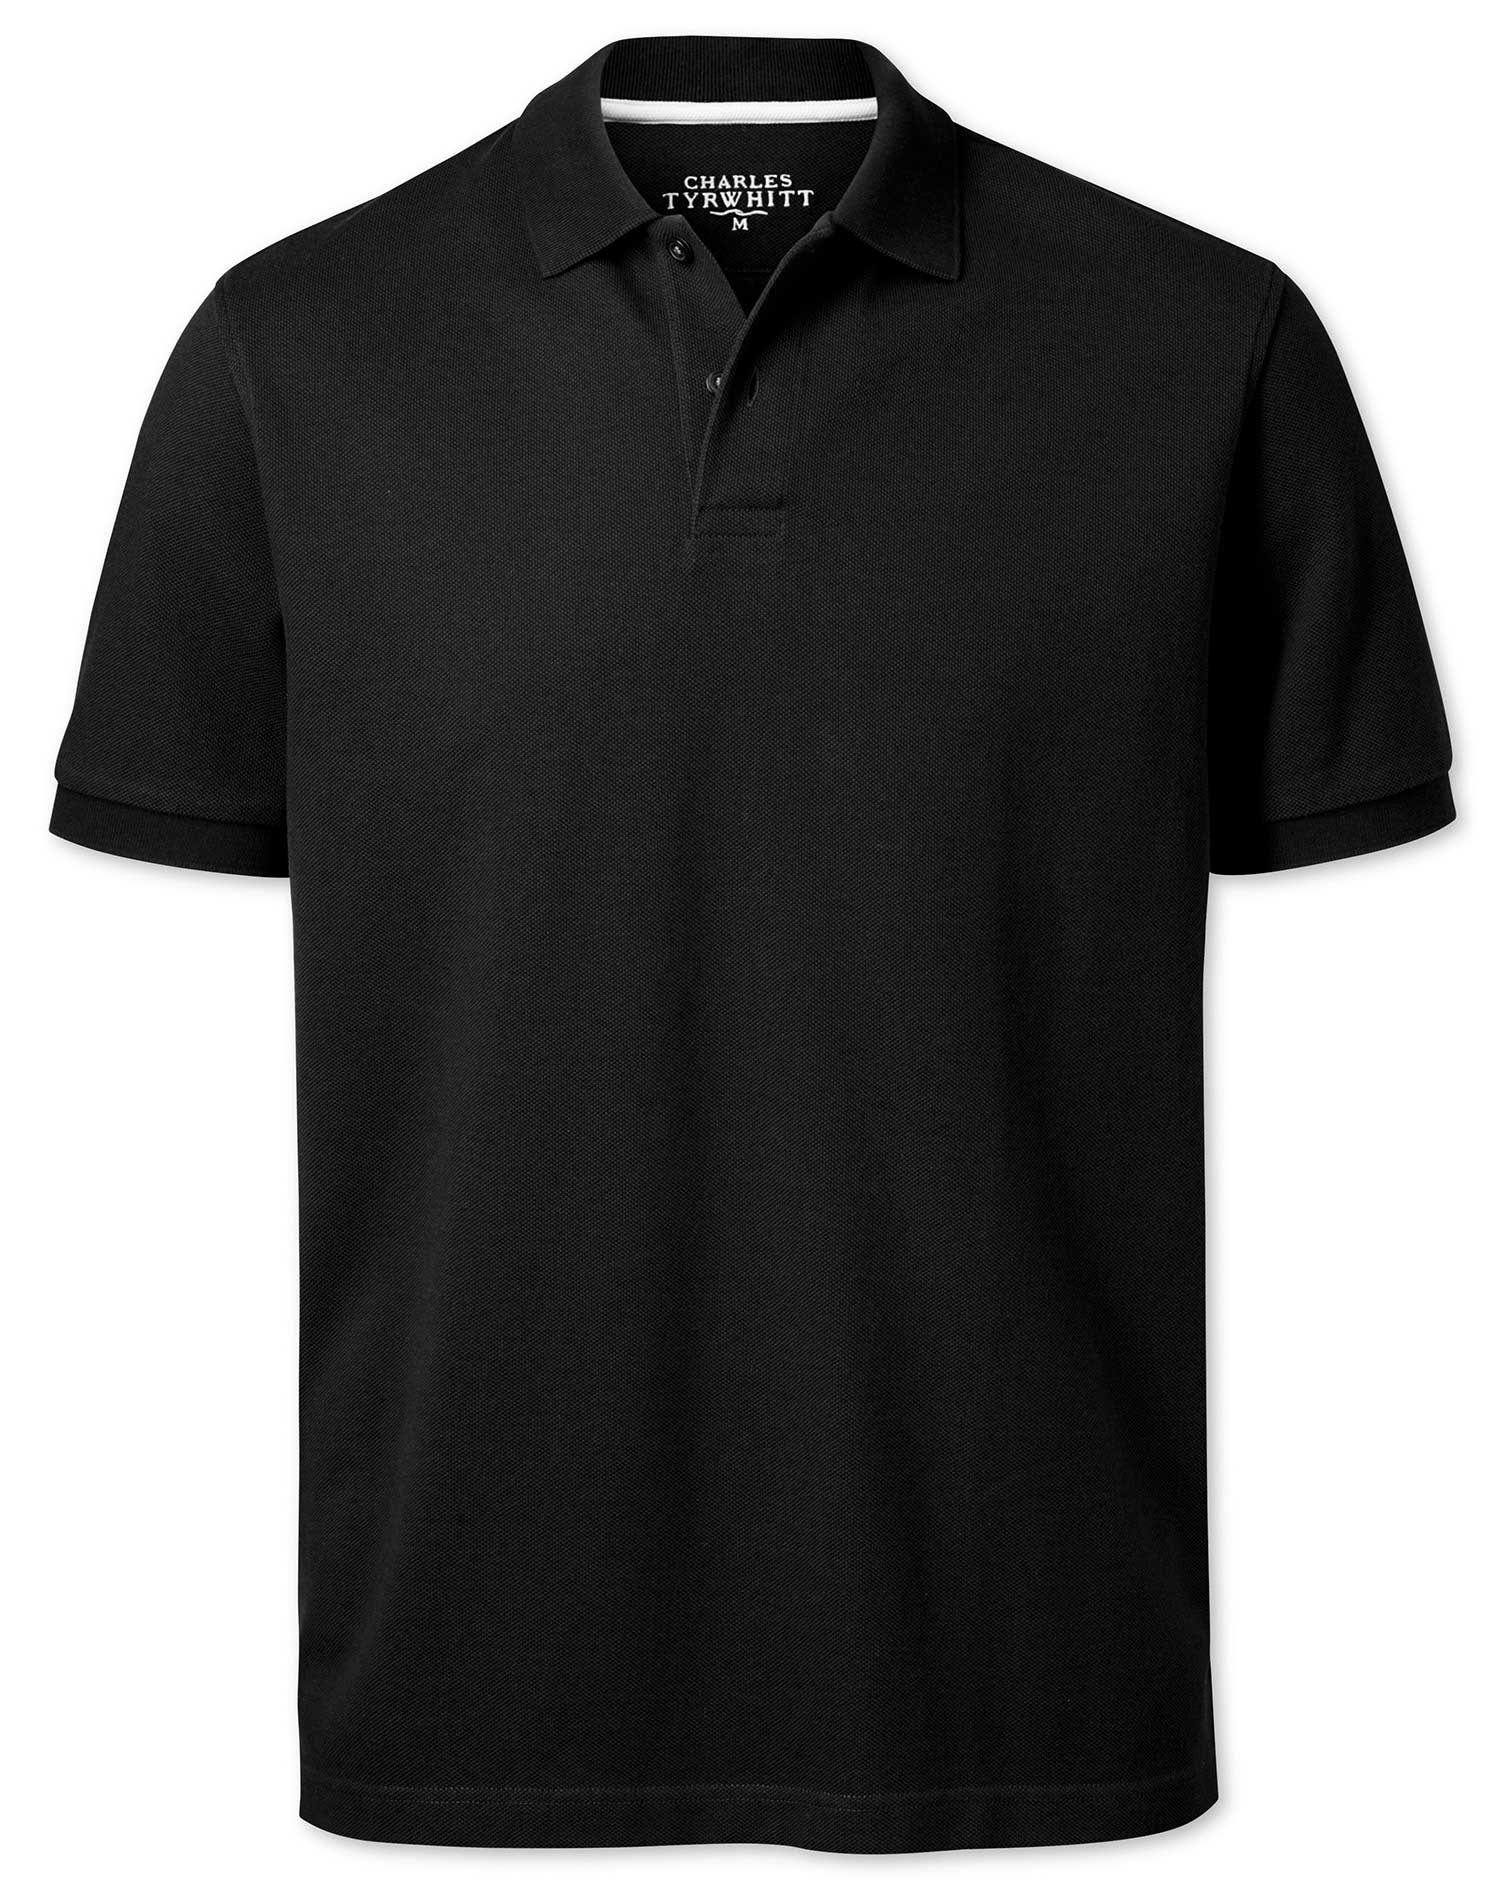 Black Pique Cotton Polo Size XL by Charles Tyrwhitt